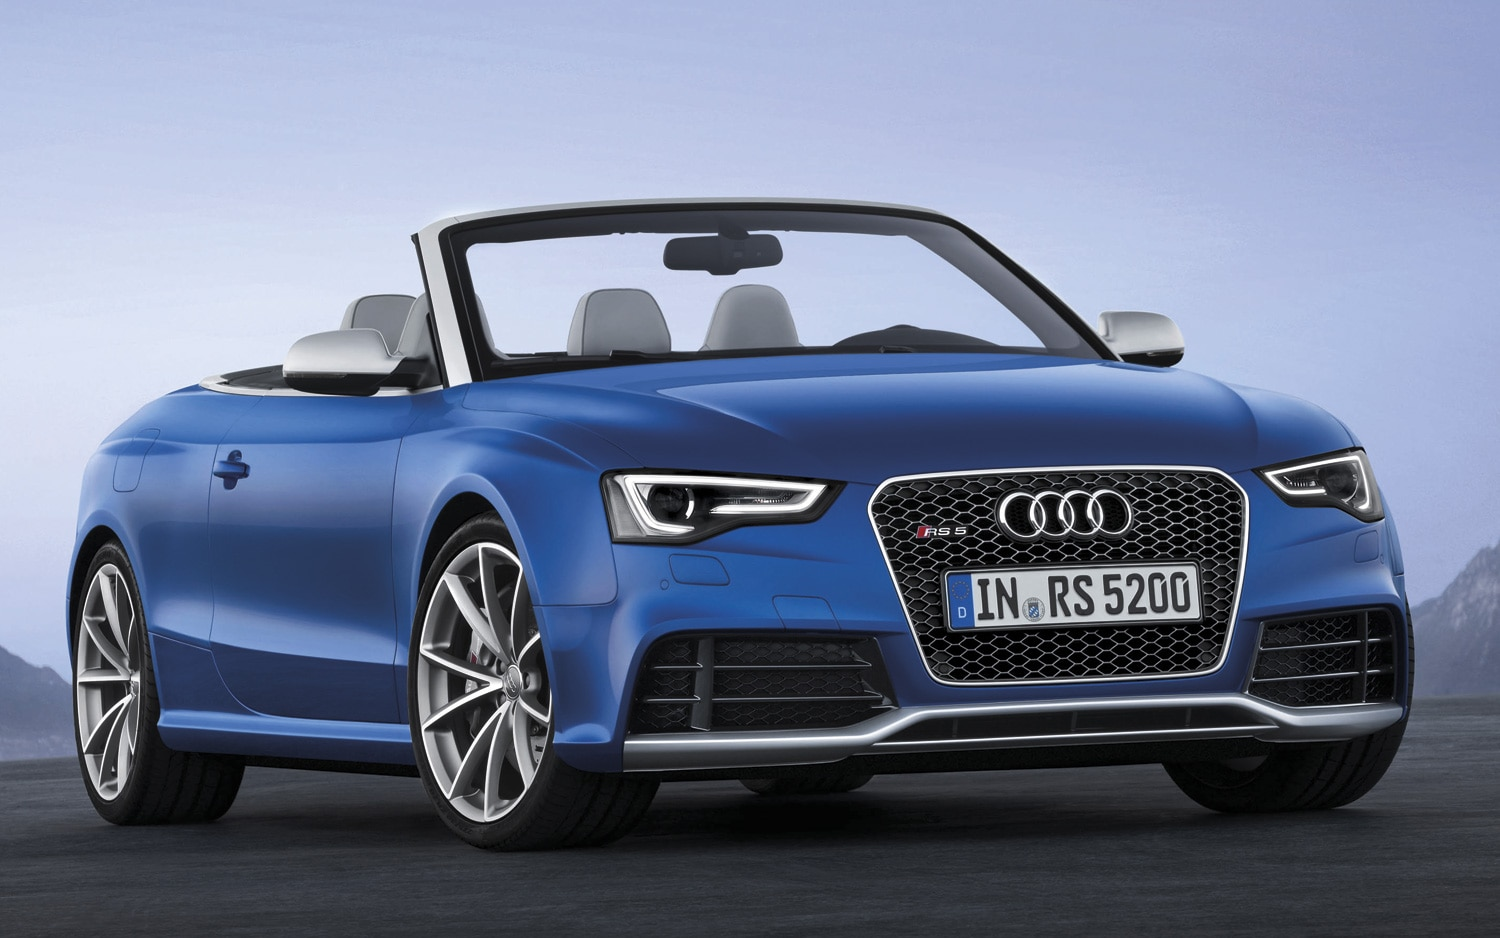 2013 Audi RS5 Cabriolet Front Three Quarters View 21